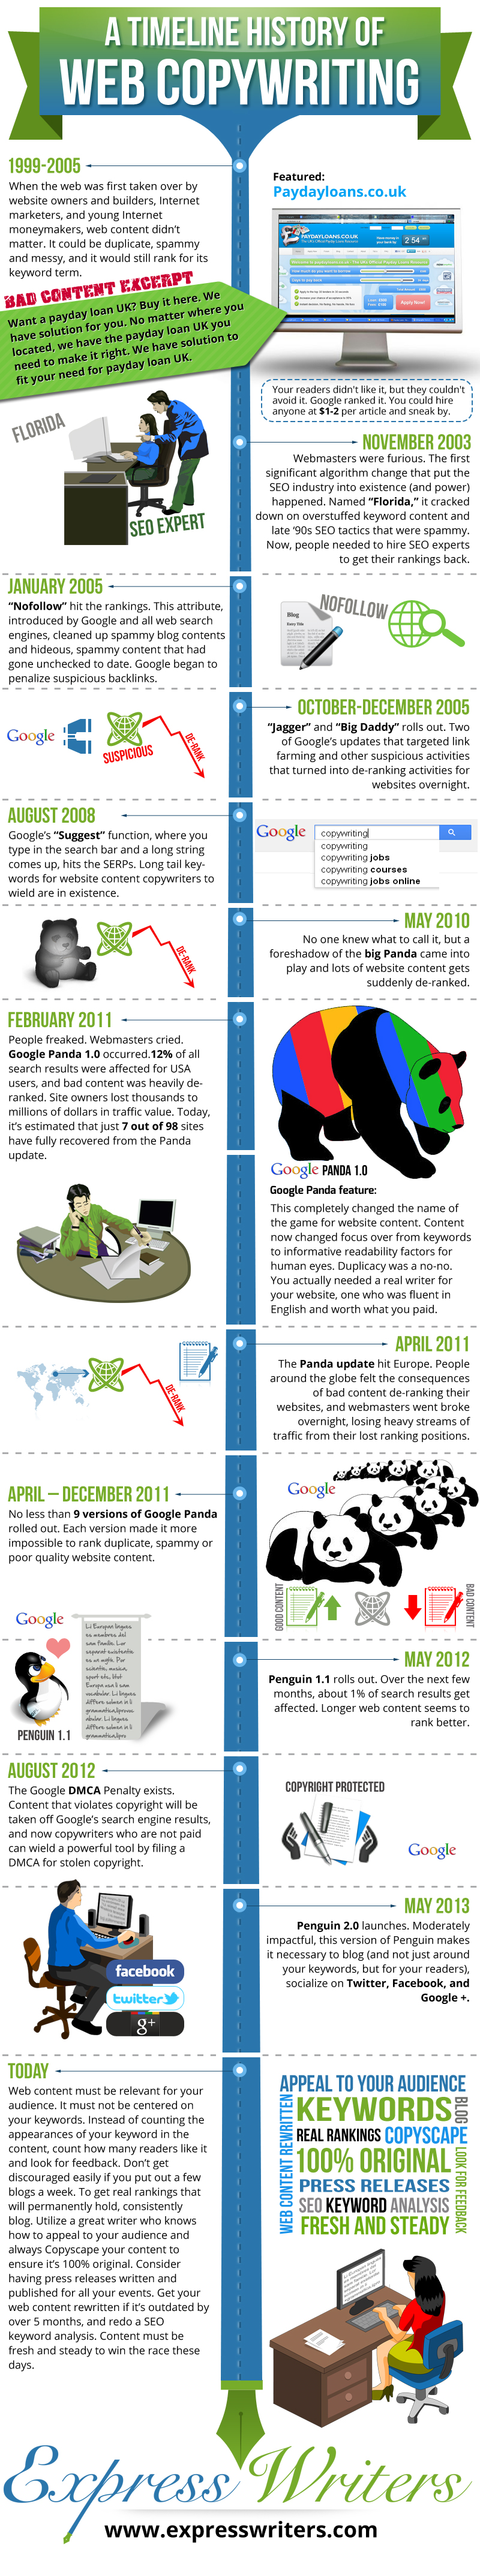 infographic timeline history of web copywriting